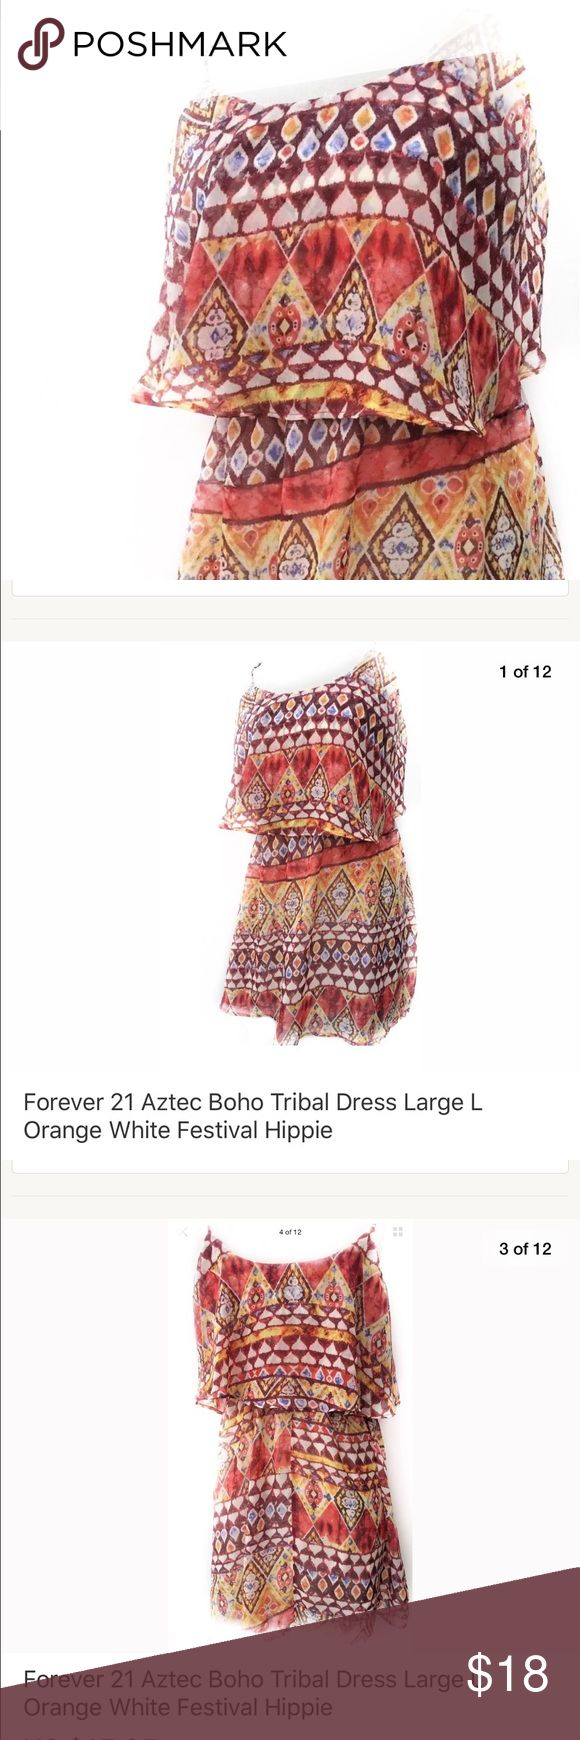 Forever 21 Aztec Boho Tribal Dress Festival Hippie Forever 21 Summer Causal Women Size Small Dress Boho Hippie Party Fashion Tribal Evening Beach Short Sleeveless Clothing Female Short Chic Fashion Bohemian   Measurements: 32 inches (From top of shoulder to bottom of Dress) 19 inches (From arm pit to arm pit) Forever 21 Dresses Mini